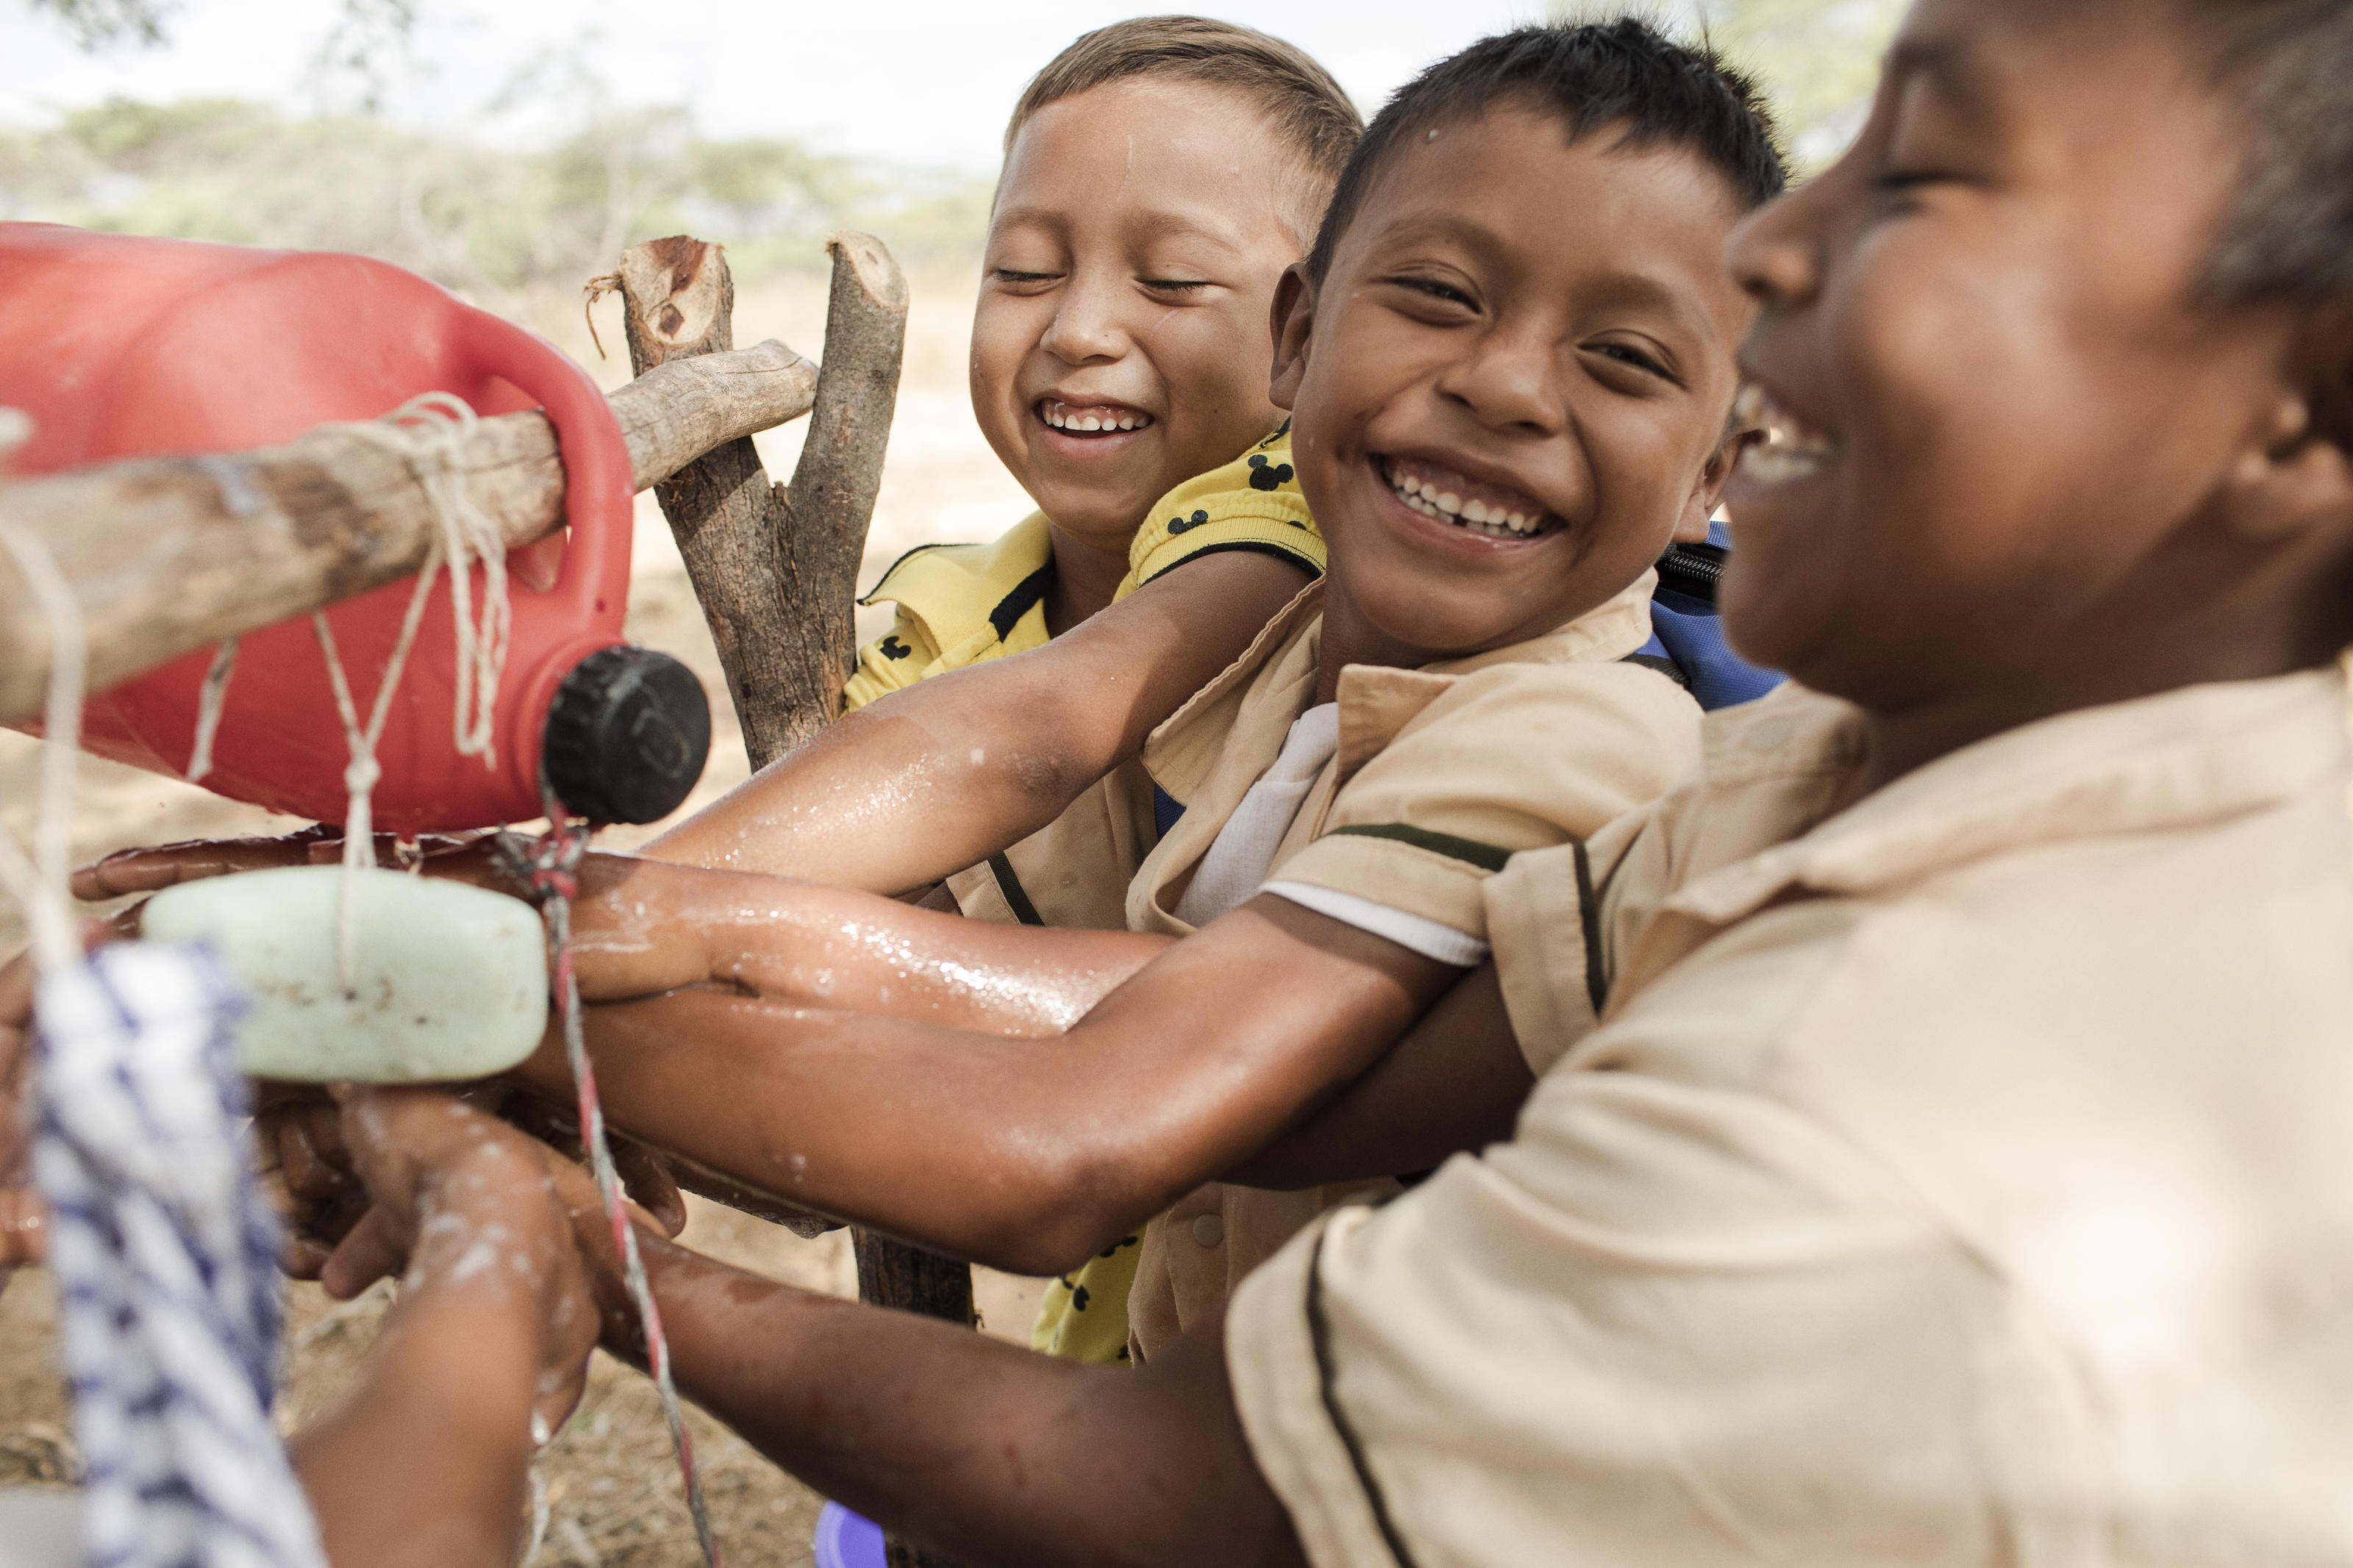 A group of Wayuuma'ana School students wash their hands at a tippy tap in Wayuuma'ana, Maicao, La Guajira, Colombia, March 2017.